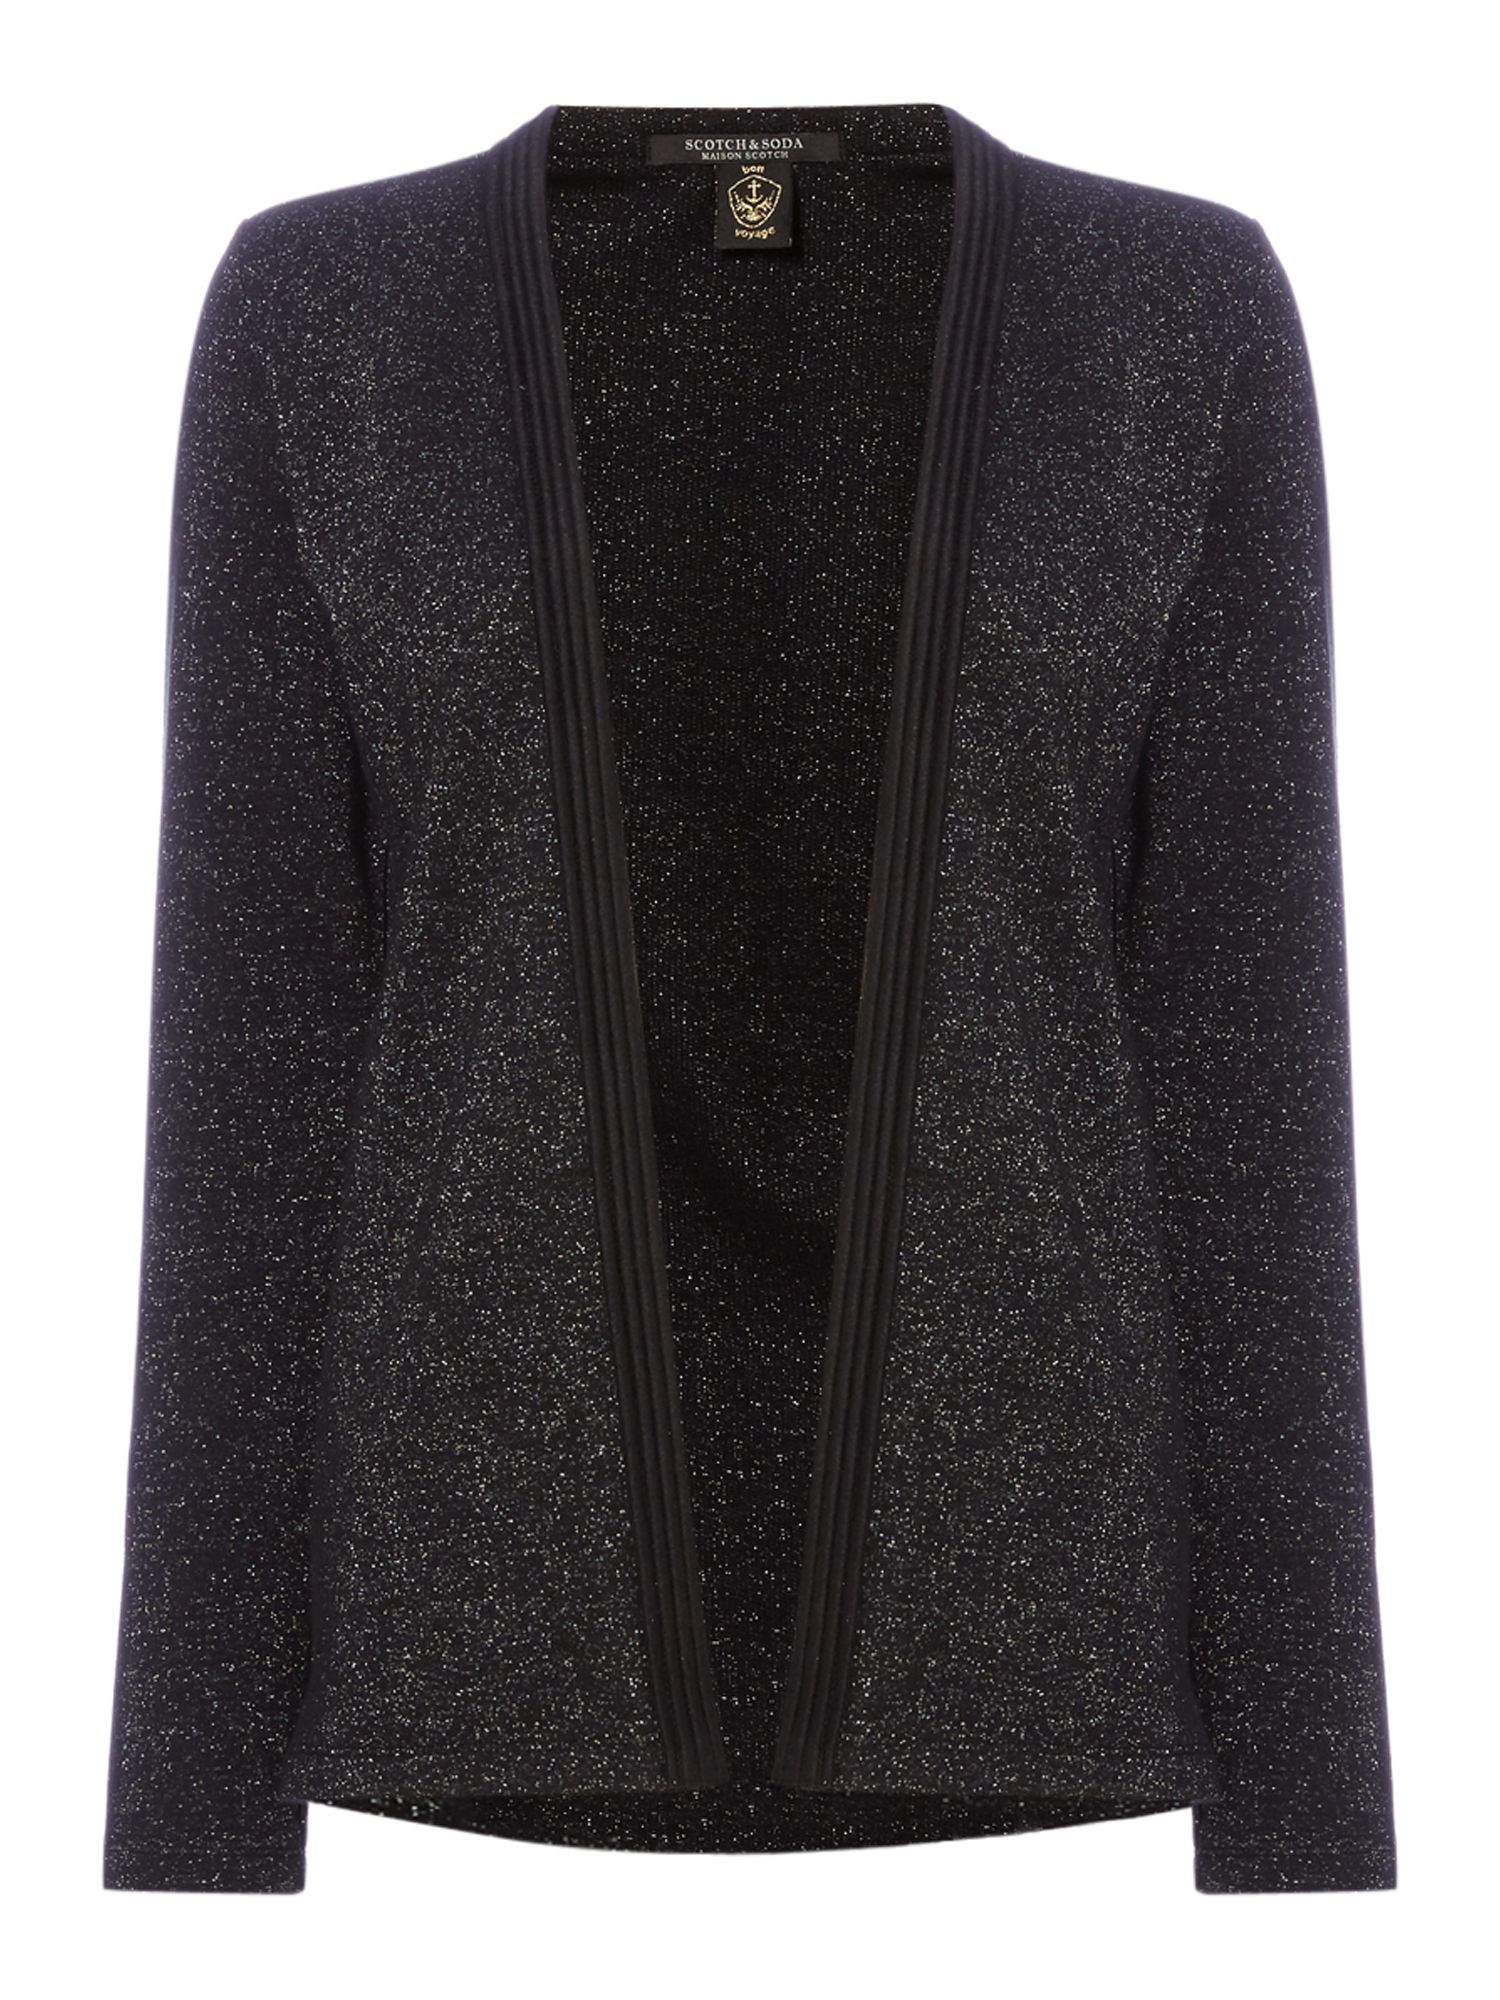 Maison Scotch Lurex jersey blazer, Black